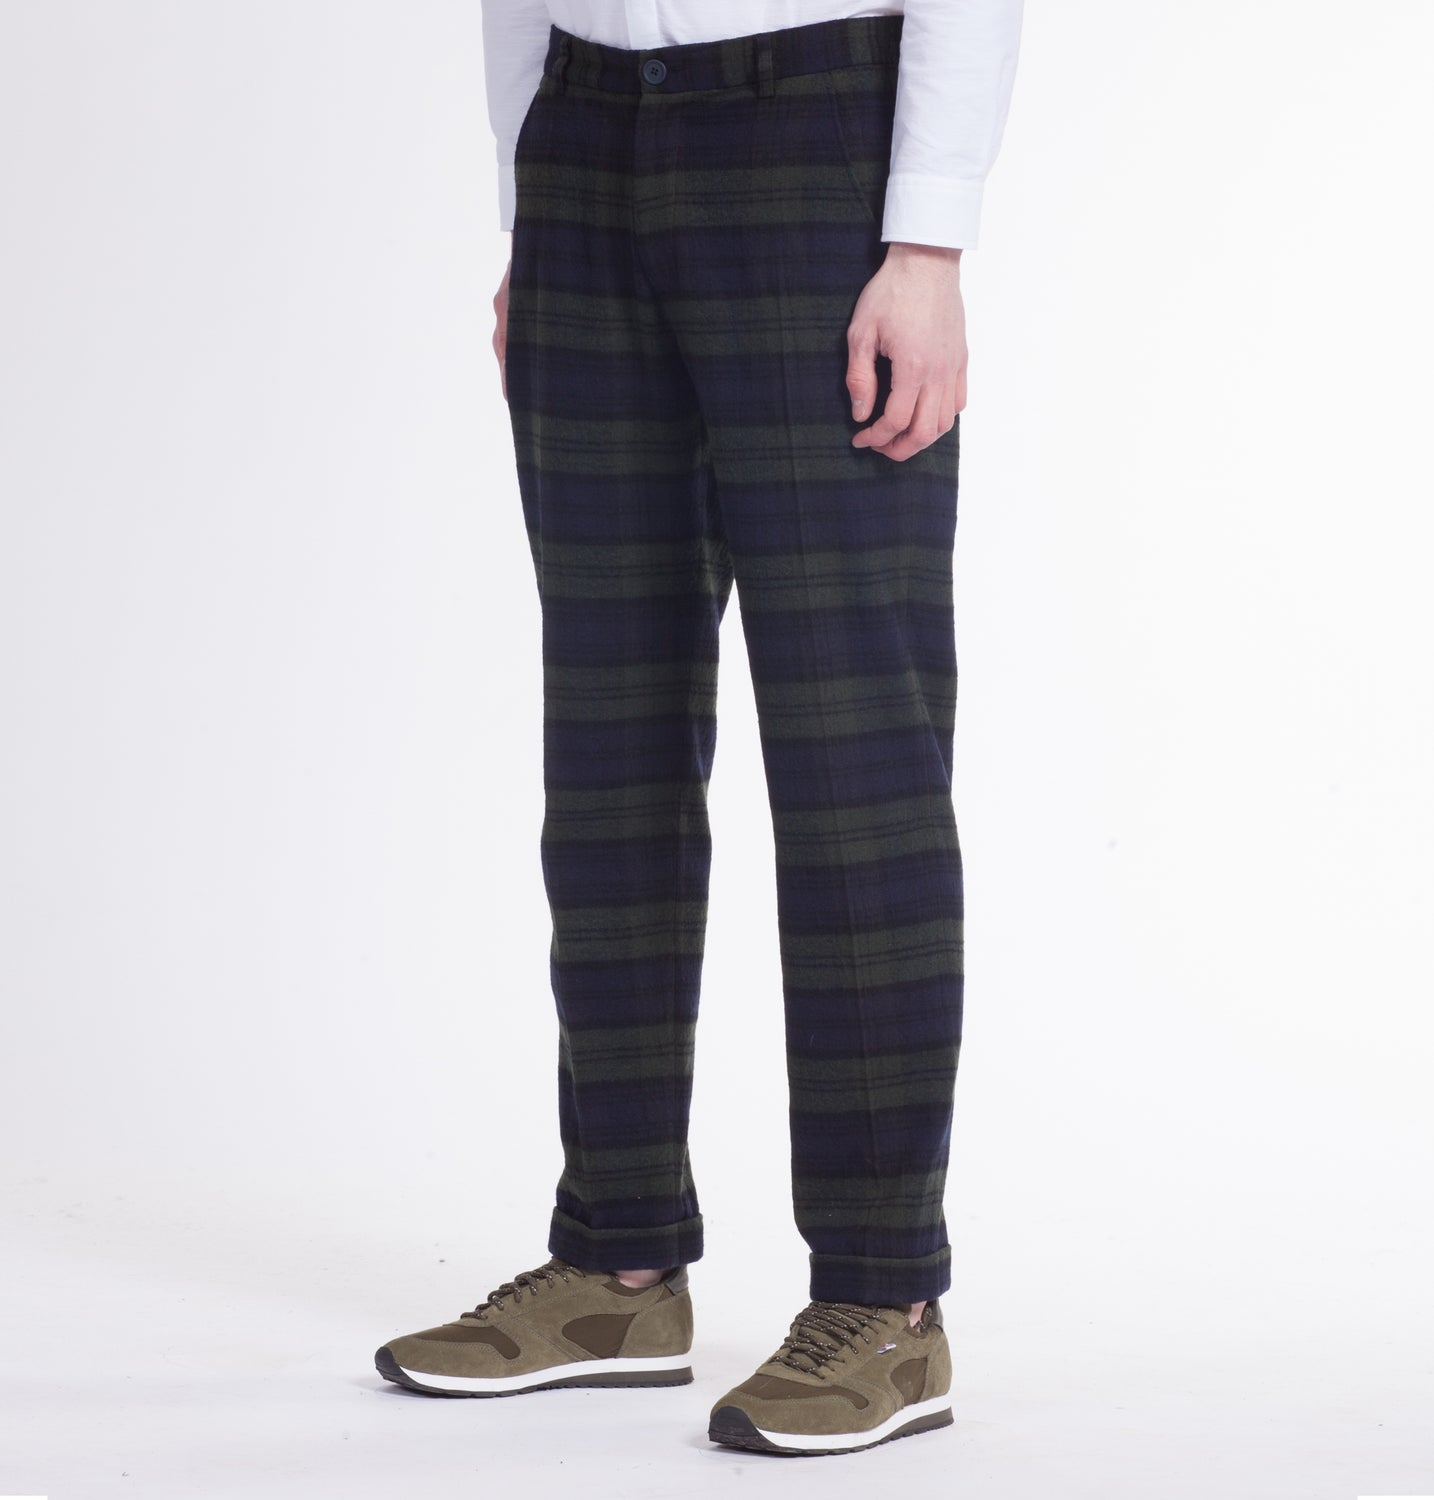 Marlow Slim Fit Trouser in Navy/Olive